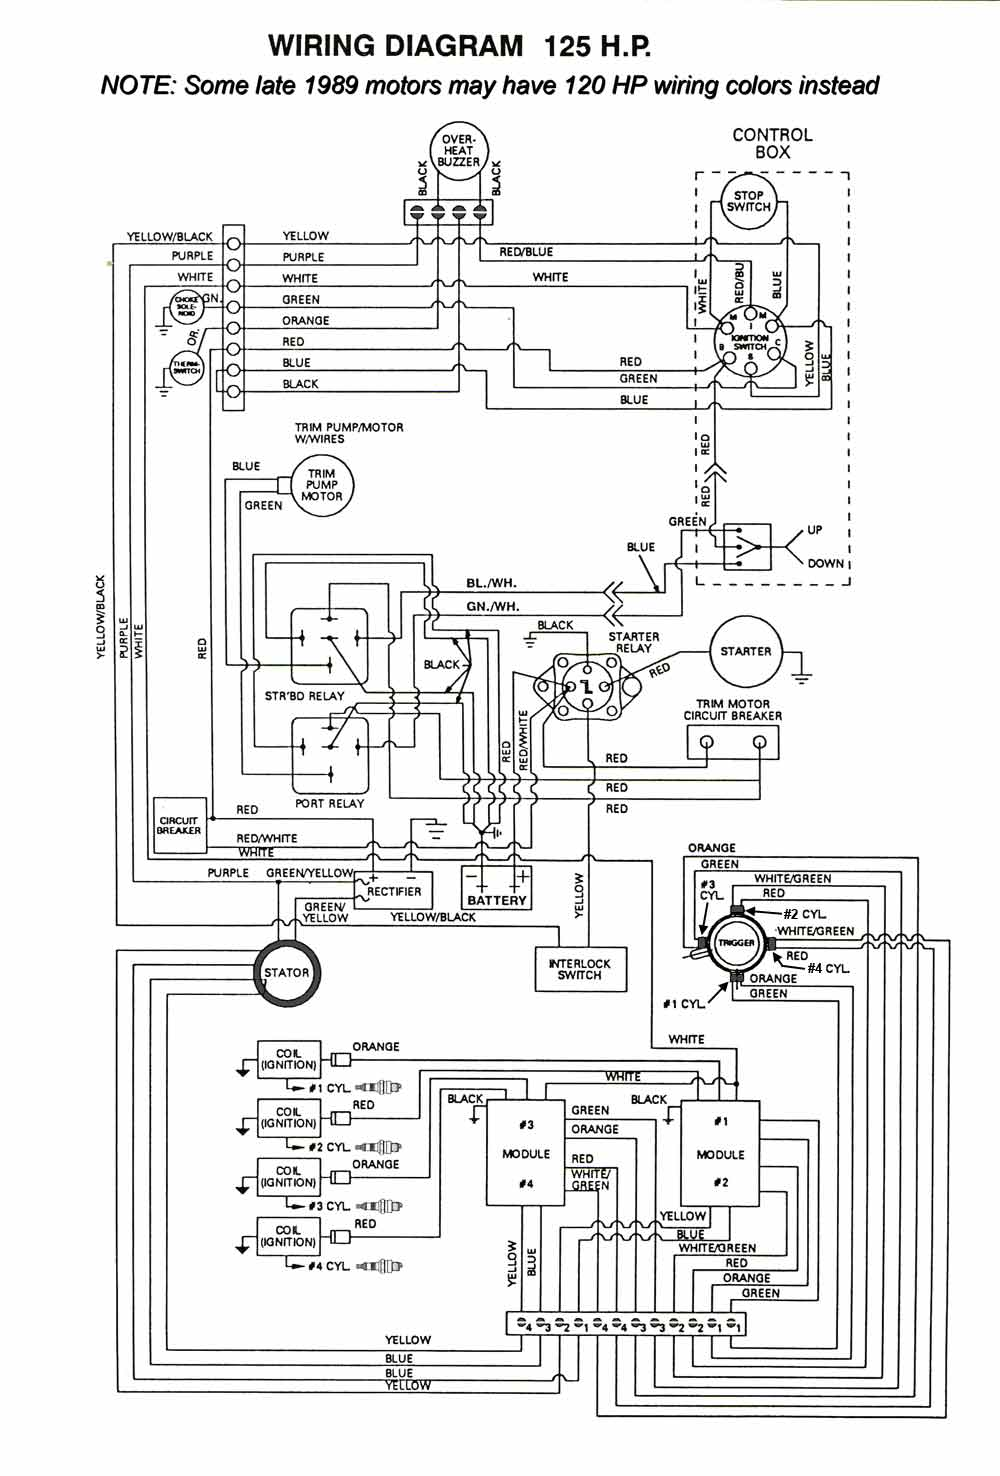 medium resolution of 70 hp force outboard motor wiring diagram engine wiring diagram centre chrysler 70 hp outboard motor wiring diagram mercury 75 hp outboard